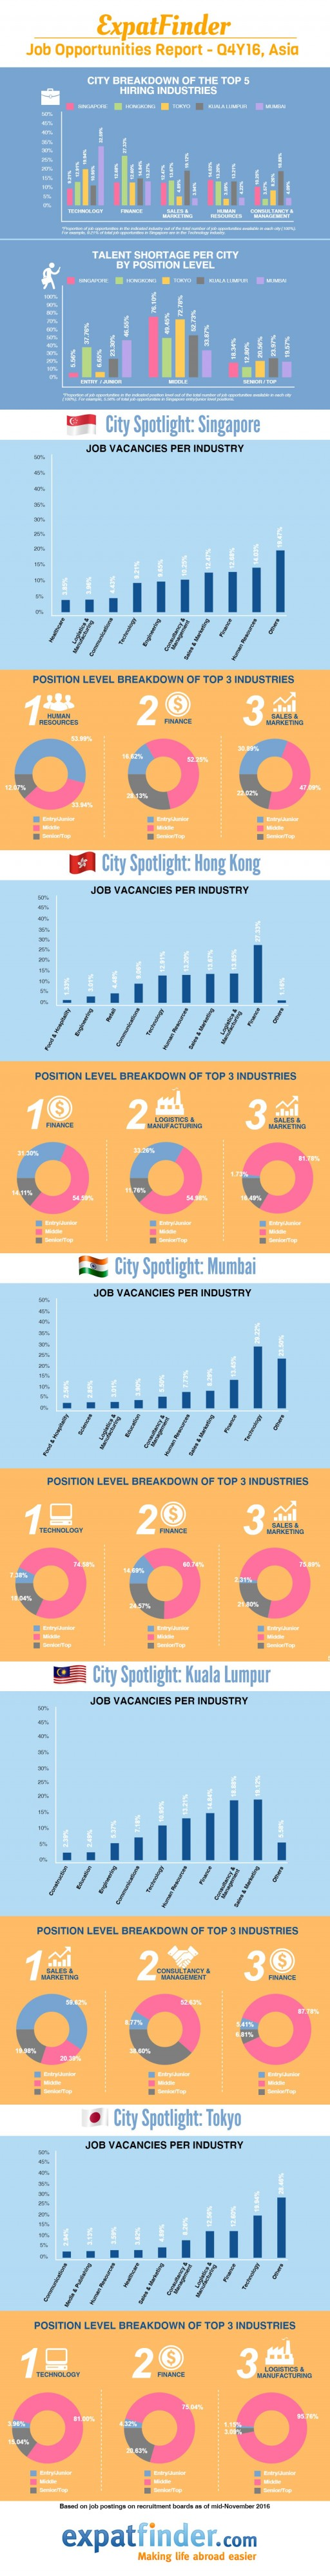 Asia_Jobs_Opportunities_Infographic